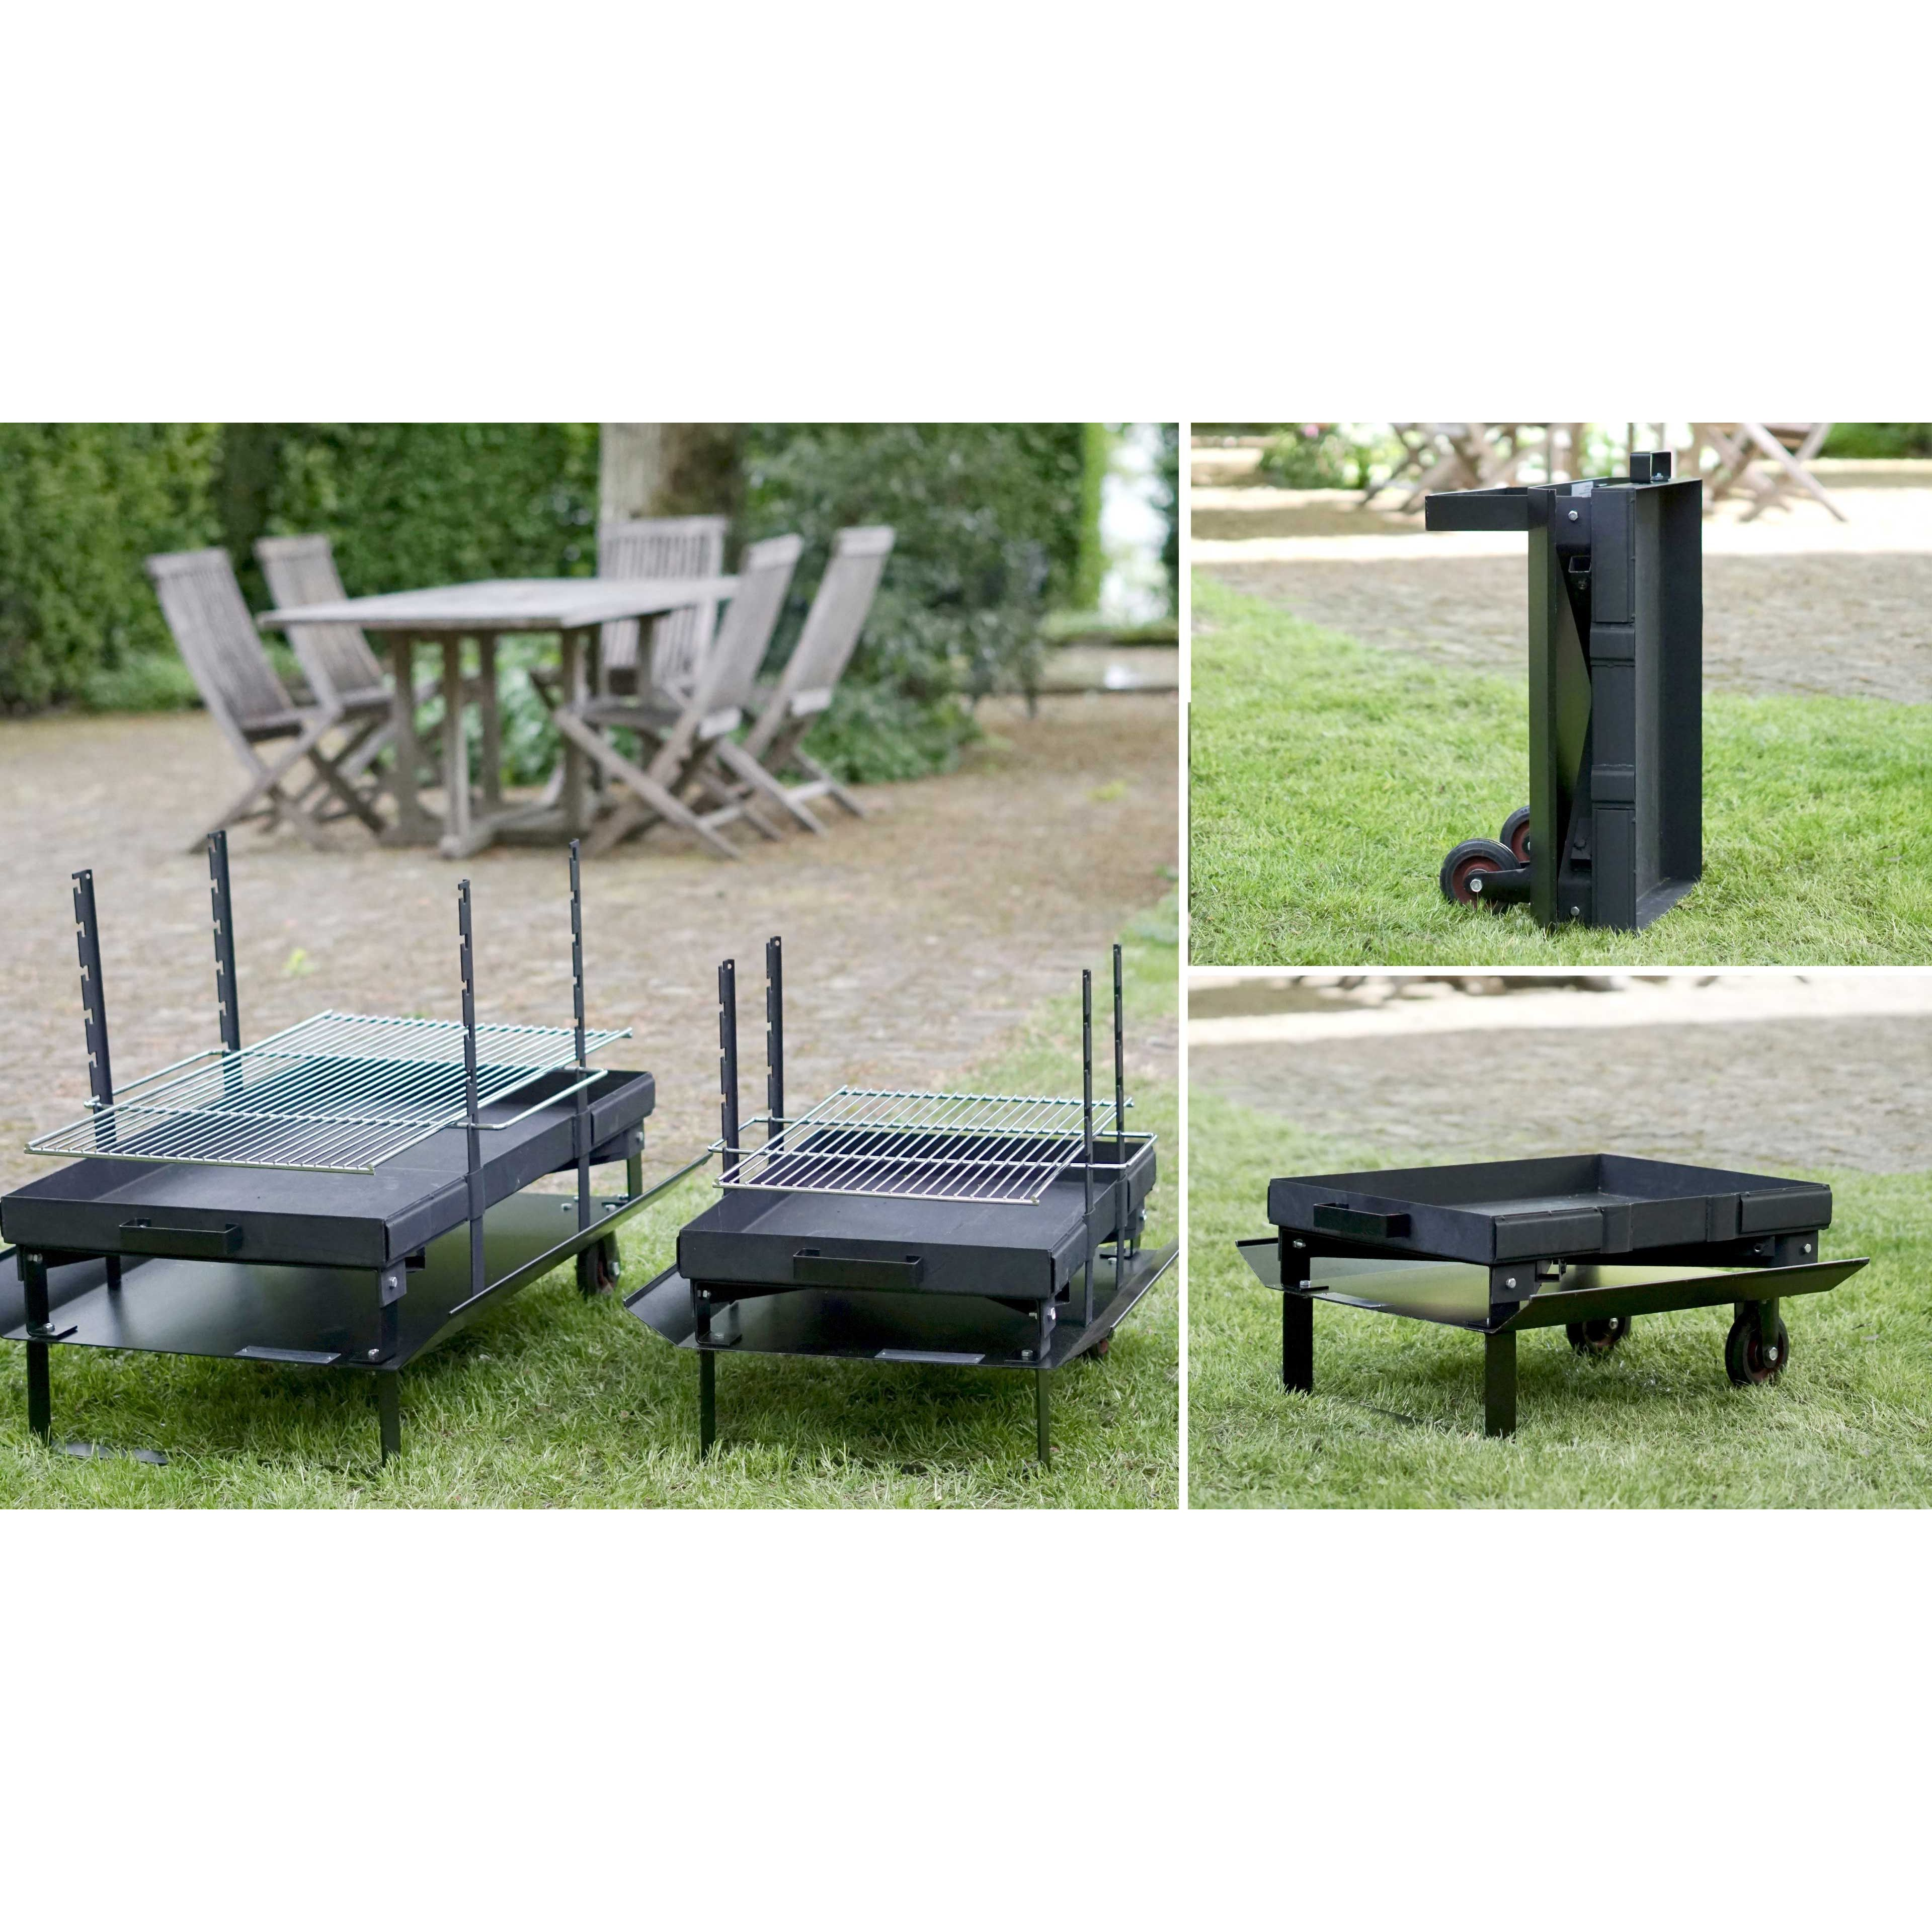 grand brasero barbecue | oviala